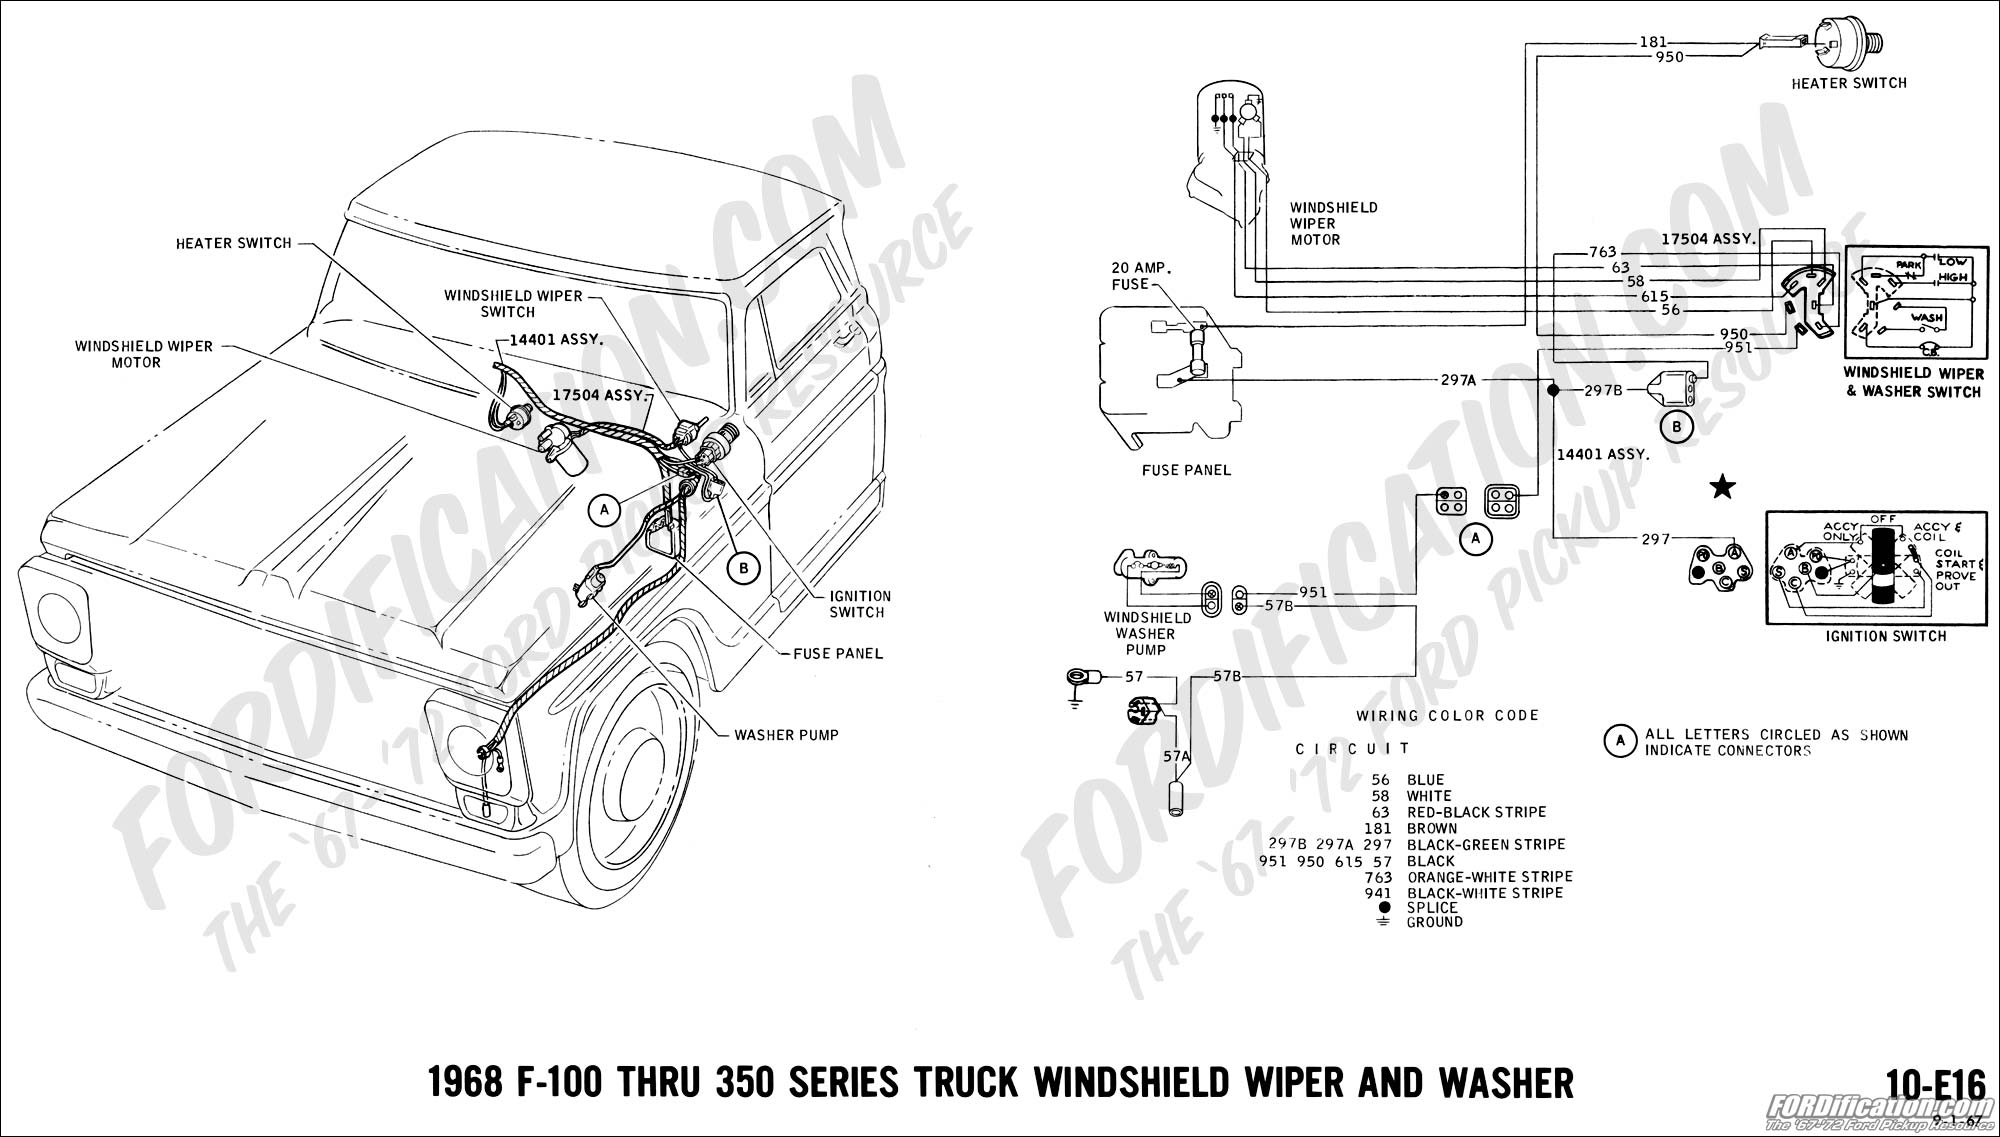 1976 Ford F 250 Ignition Wiring Diagram Library 1990 1968 Truck Dist Smart Diagrams U2022 Rh Emgsolutions Co 1975